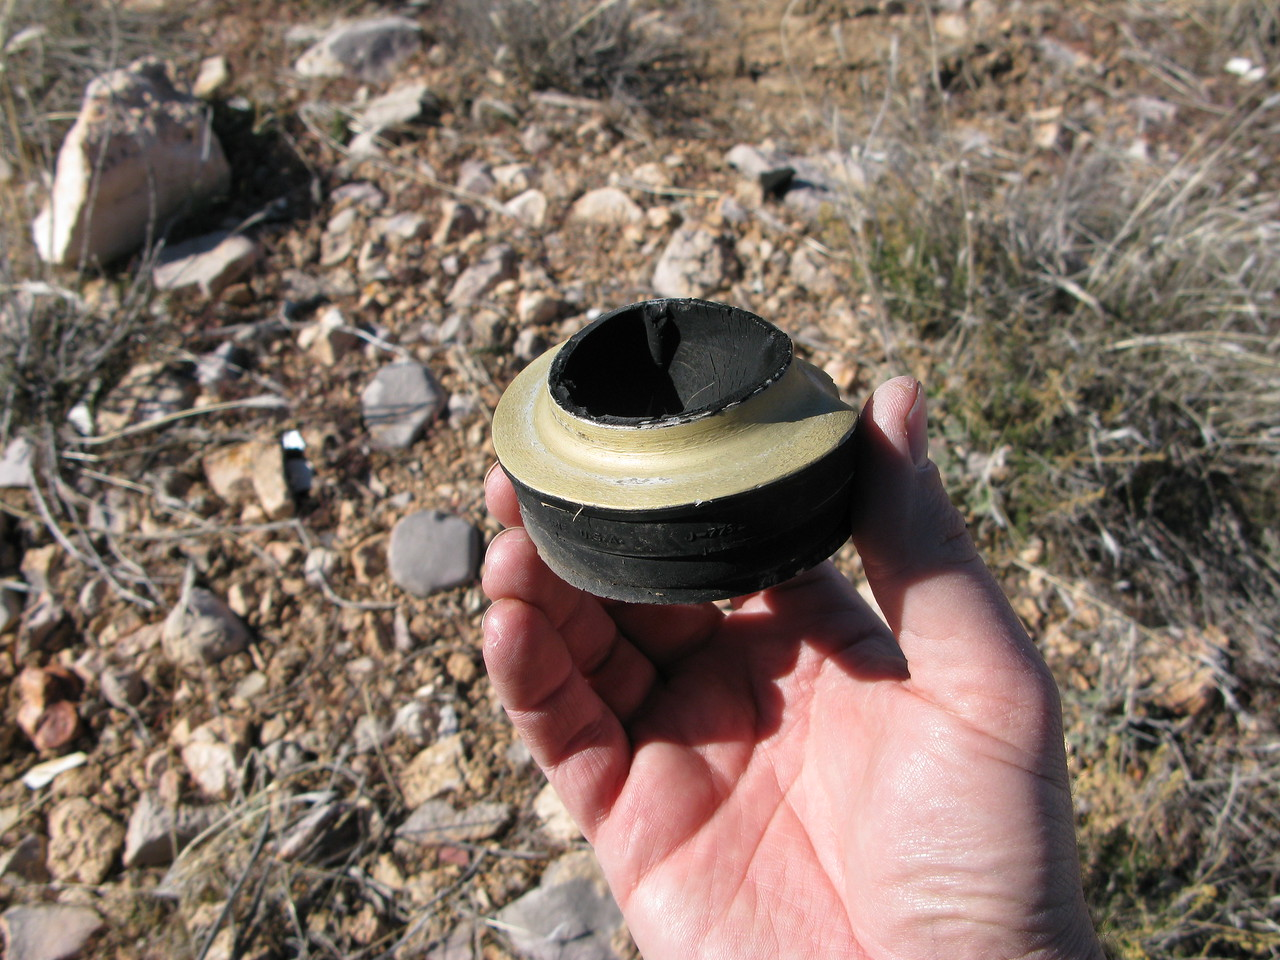 An aircraft engine vibration shock mount located at the impact site.